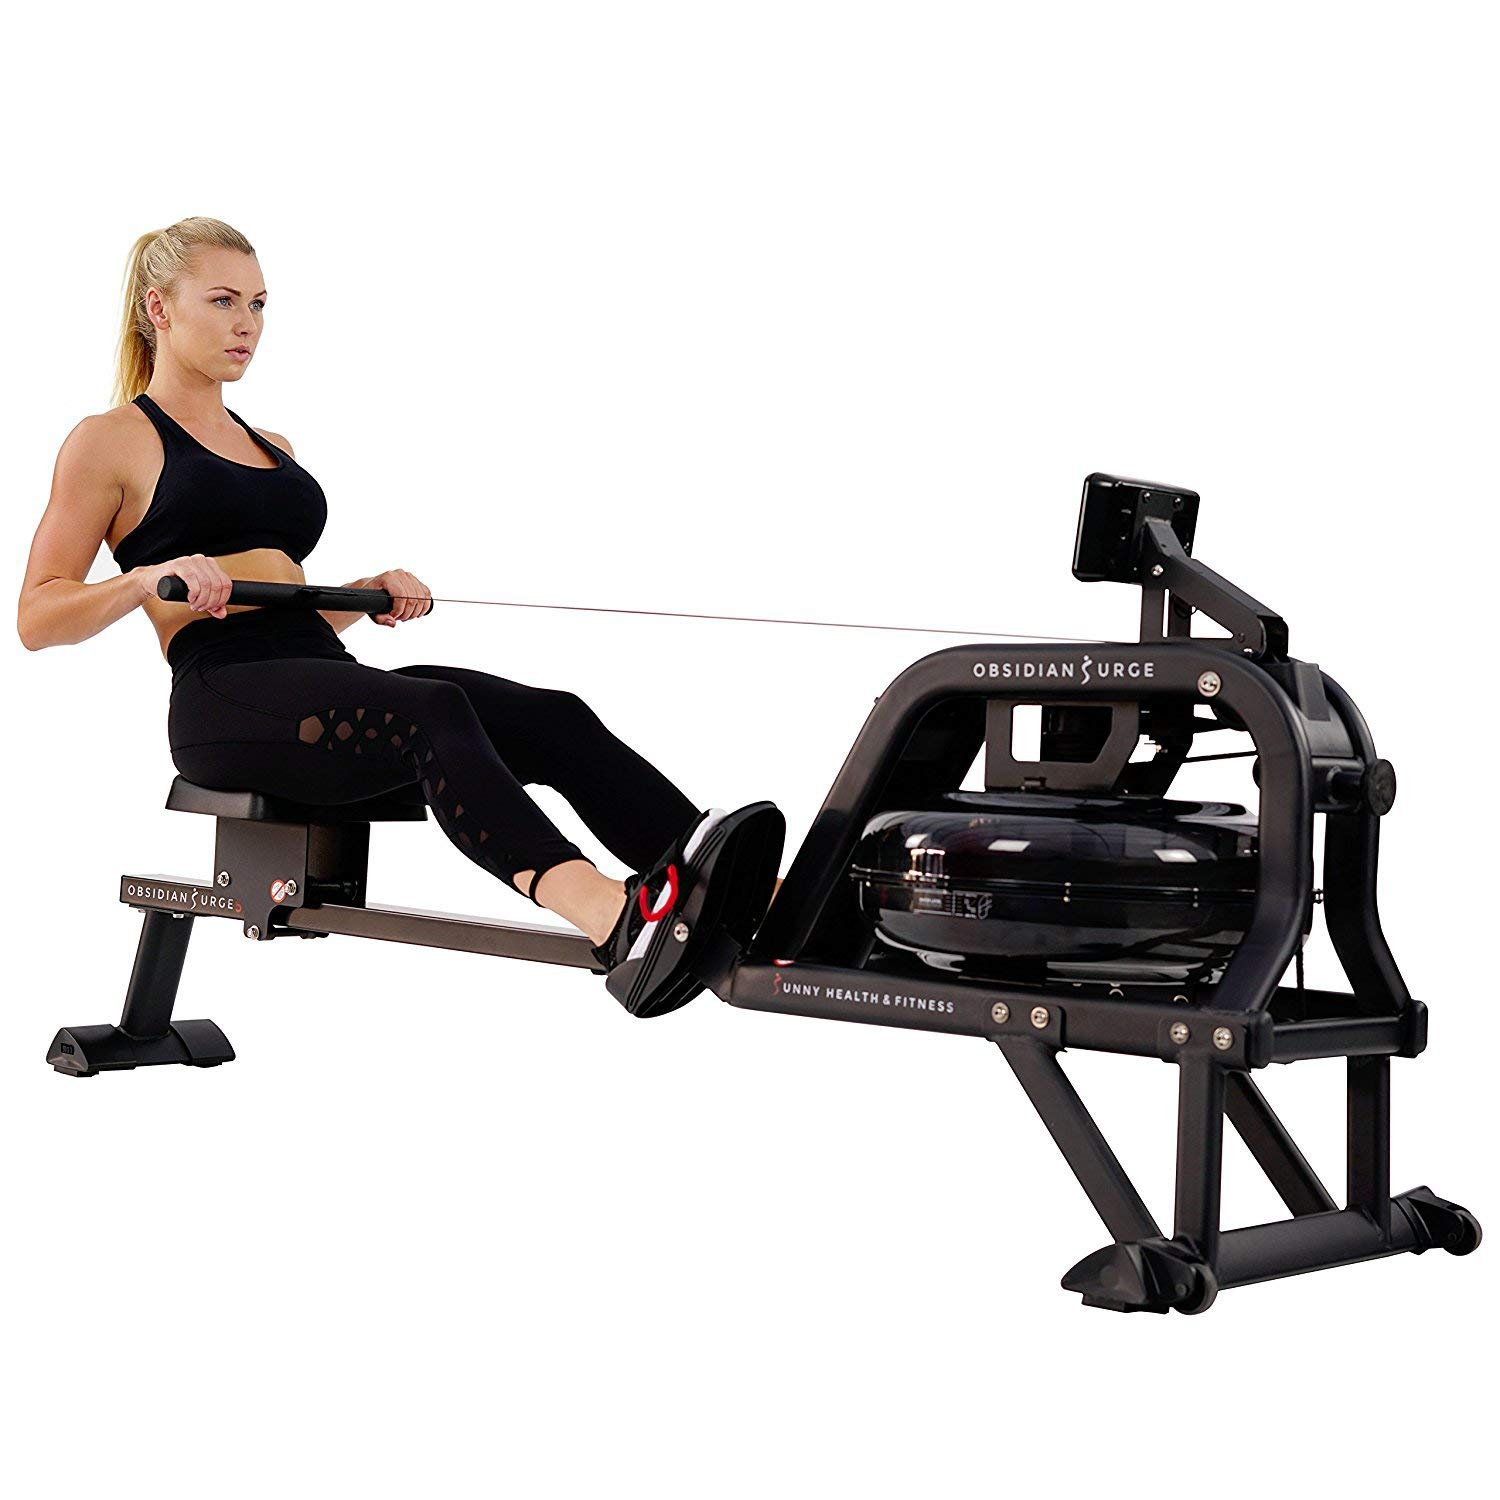 Sunny Health Obsidian Surge Water Rowing Machine